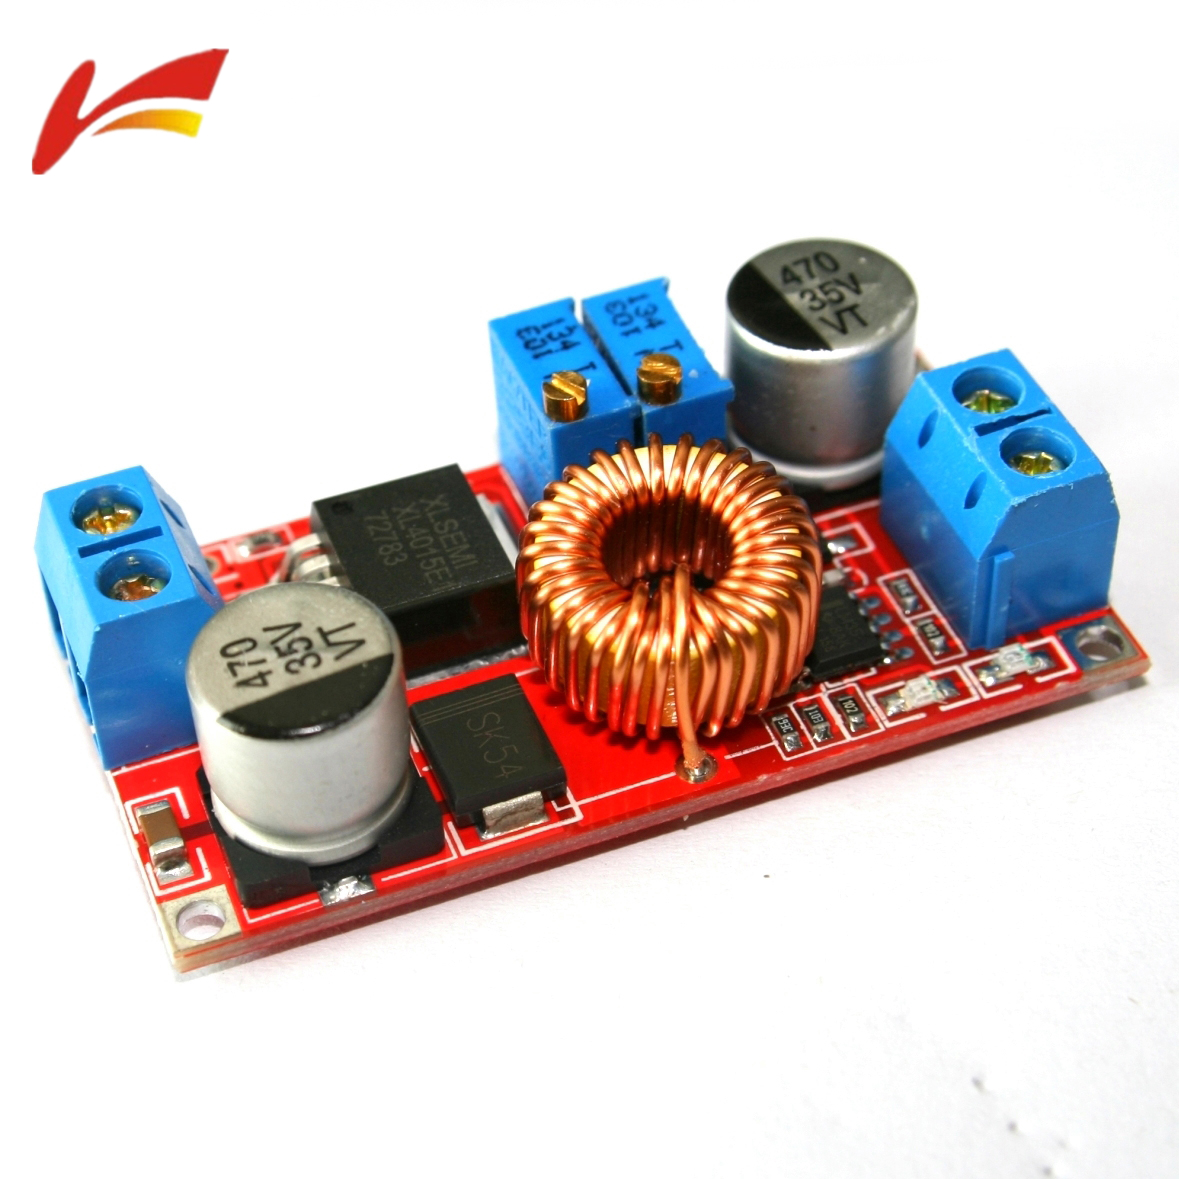 Lm2596hvs Lm2596 Power Supply Module Dc Buck 3a Adjustable Looking For A Red Laser Diode Circuit Controlablelm317components01 Cc Cv Max 5a Step Down Charging Board Xl4015 Lithium Battery Charger Converter